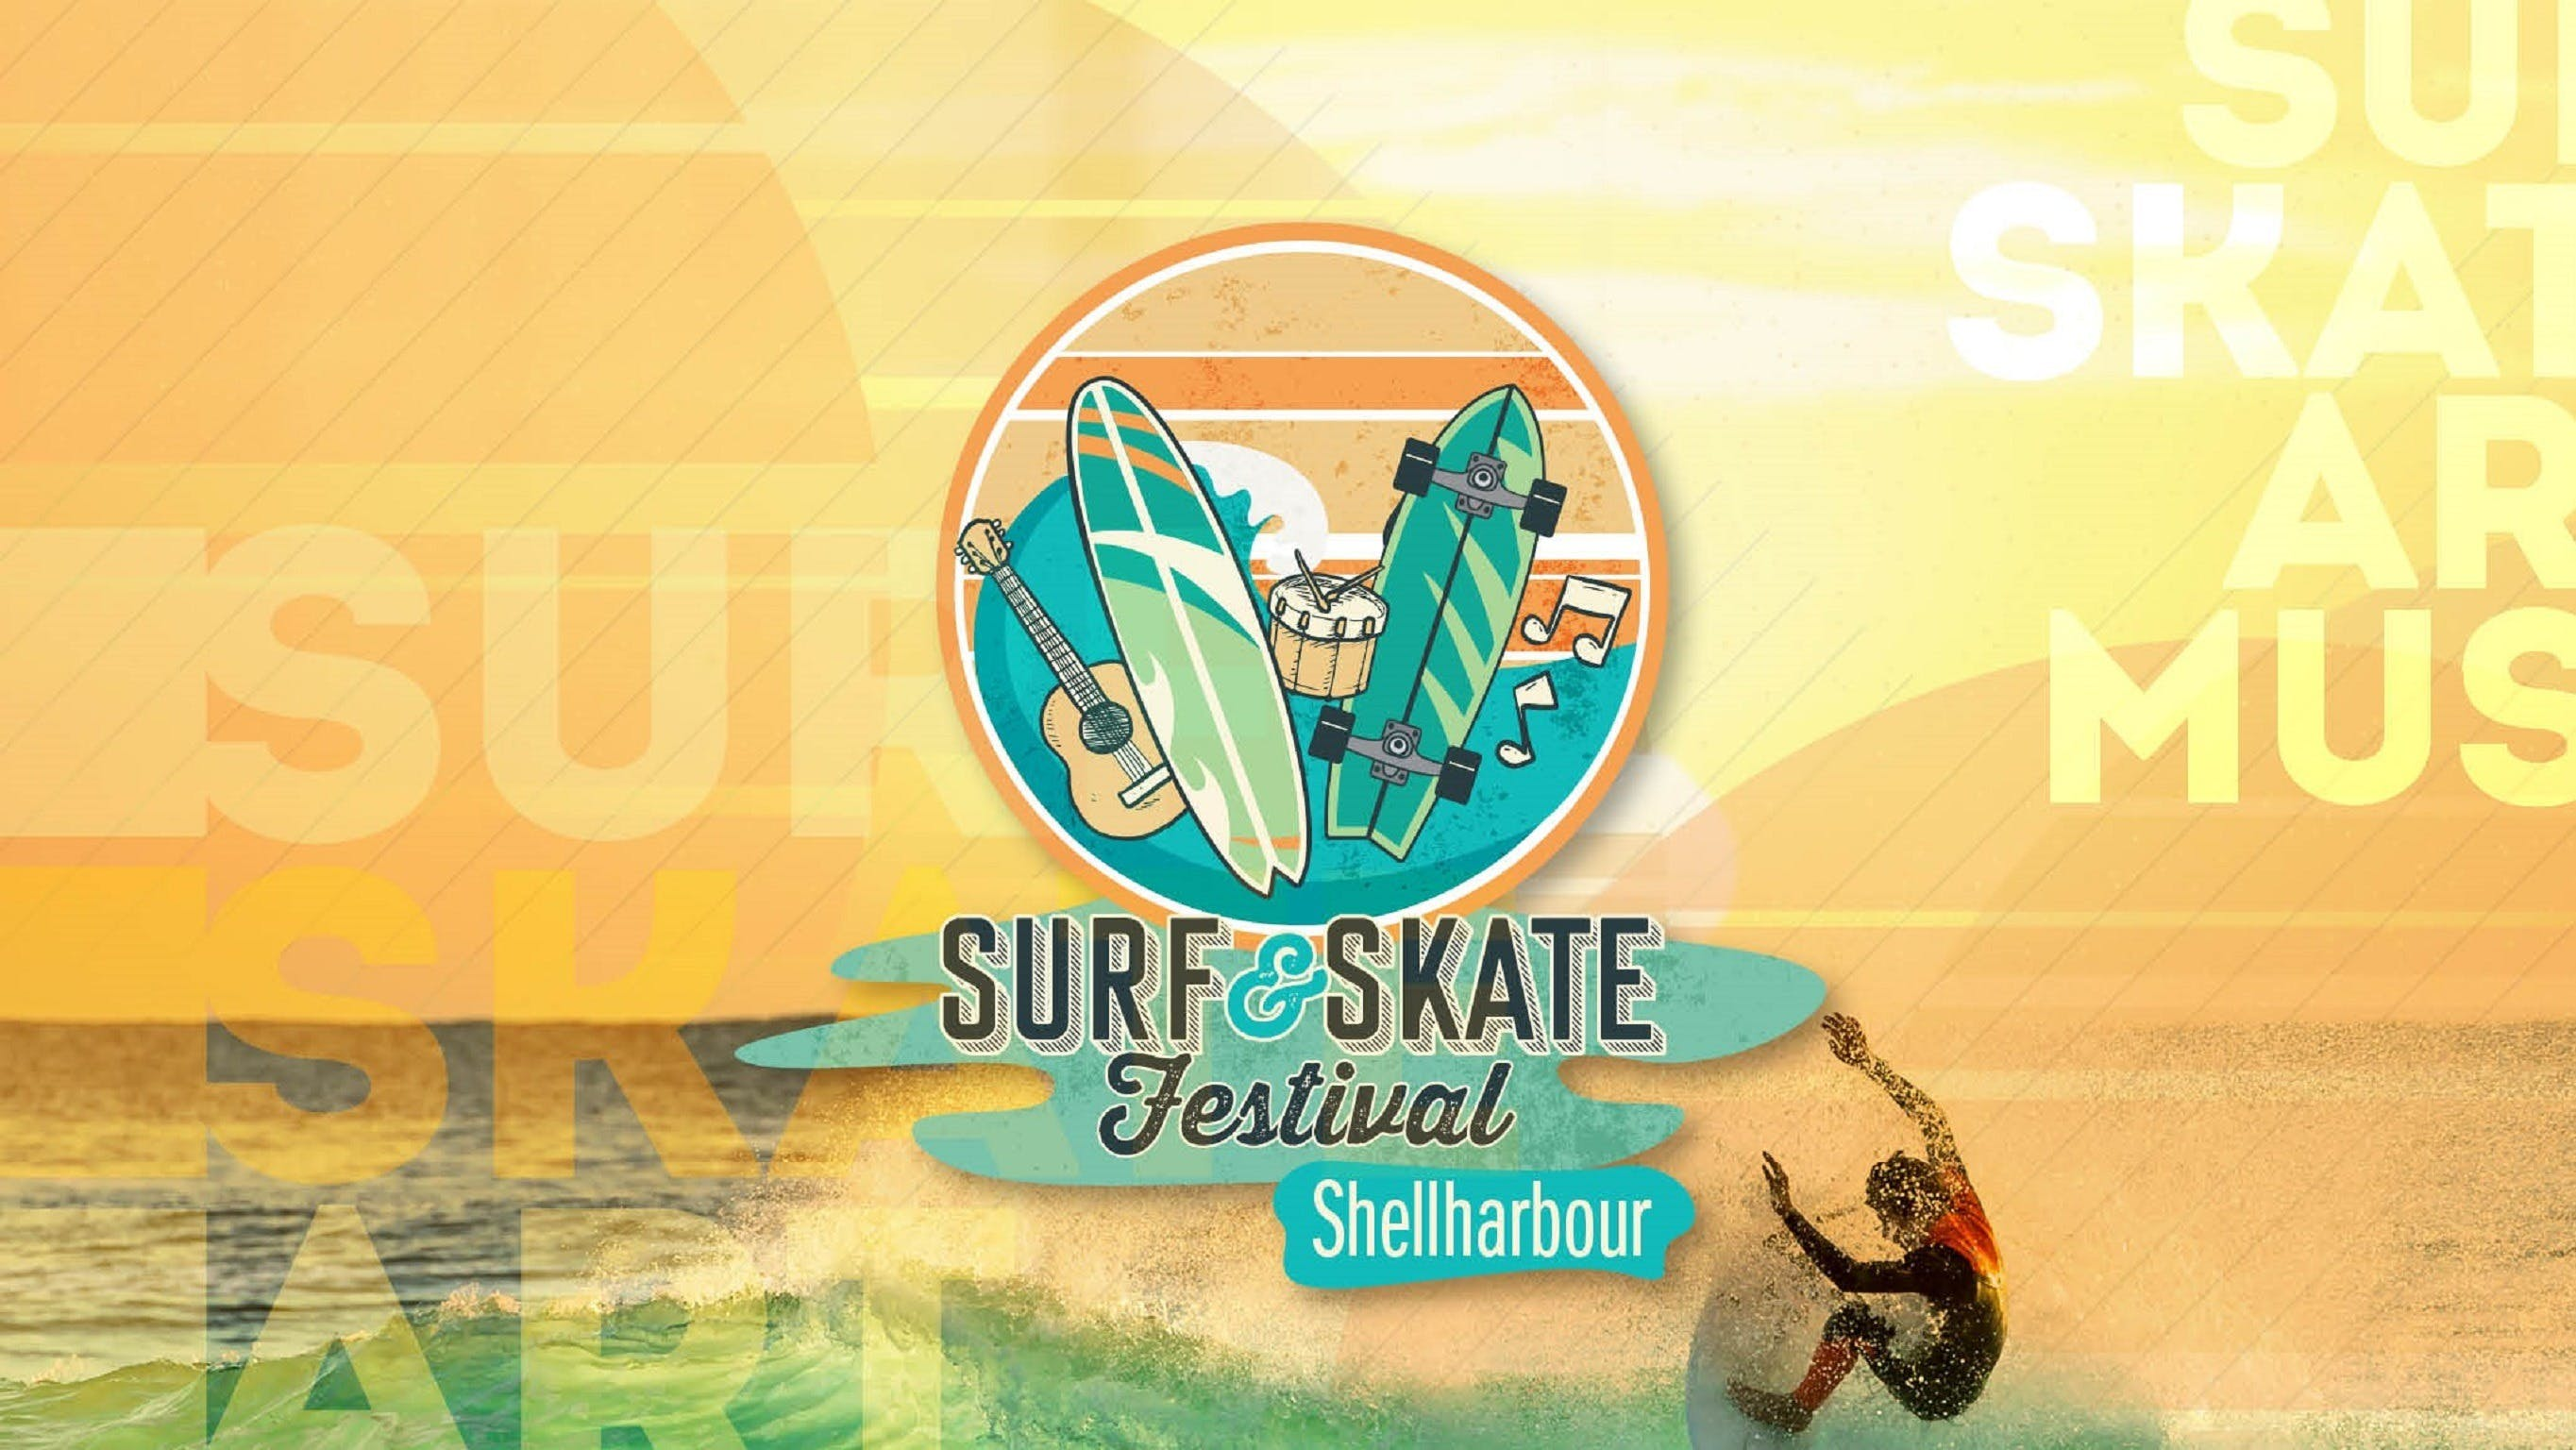 Skate and Surf Festival Shellharbour - Accommodation in Surfers Paradise